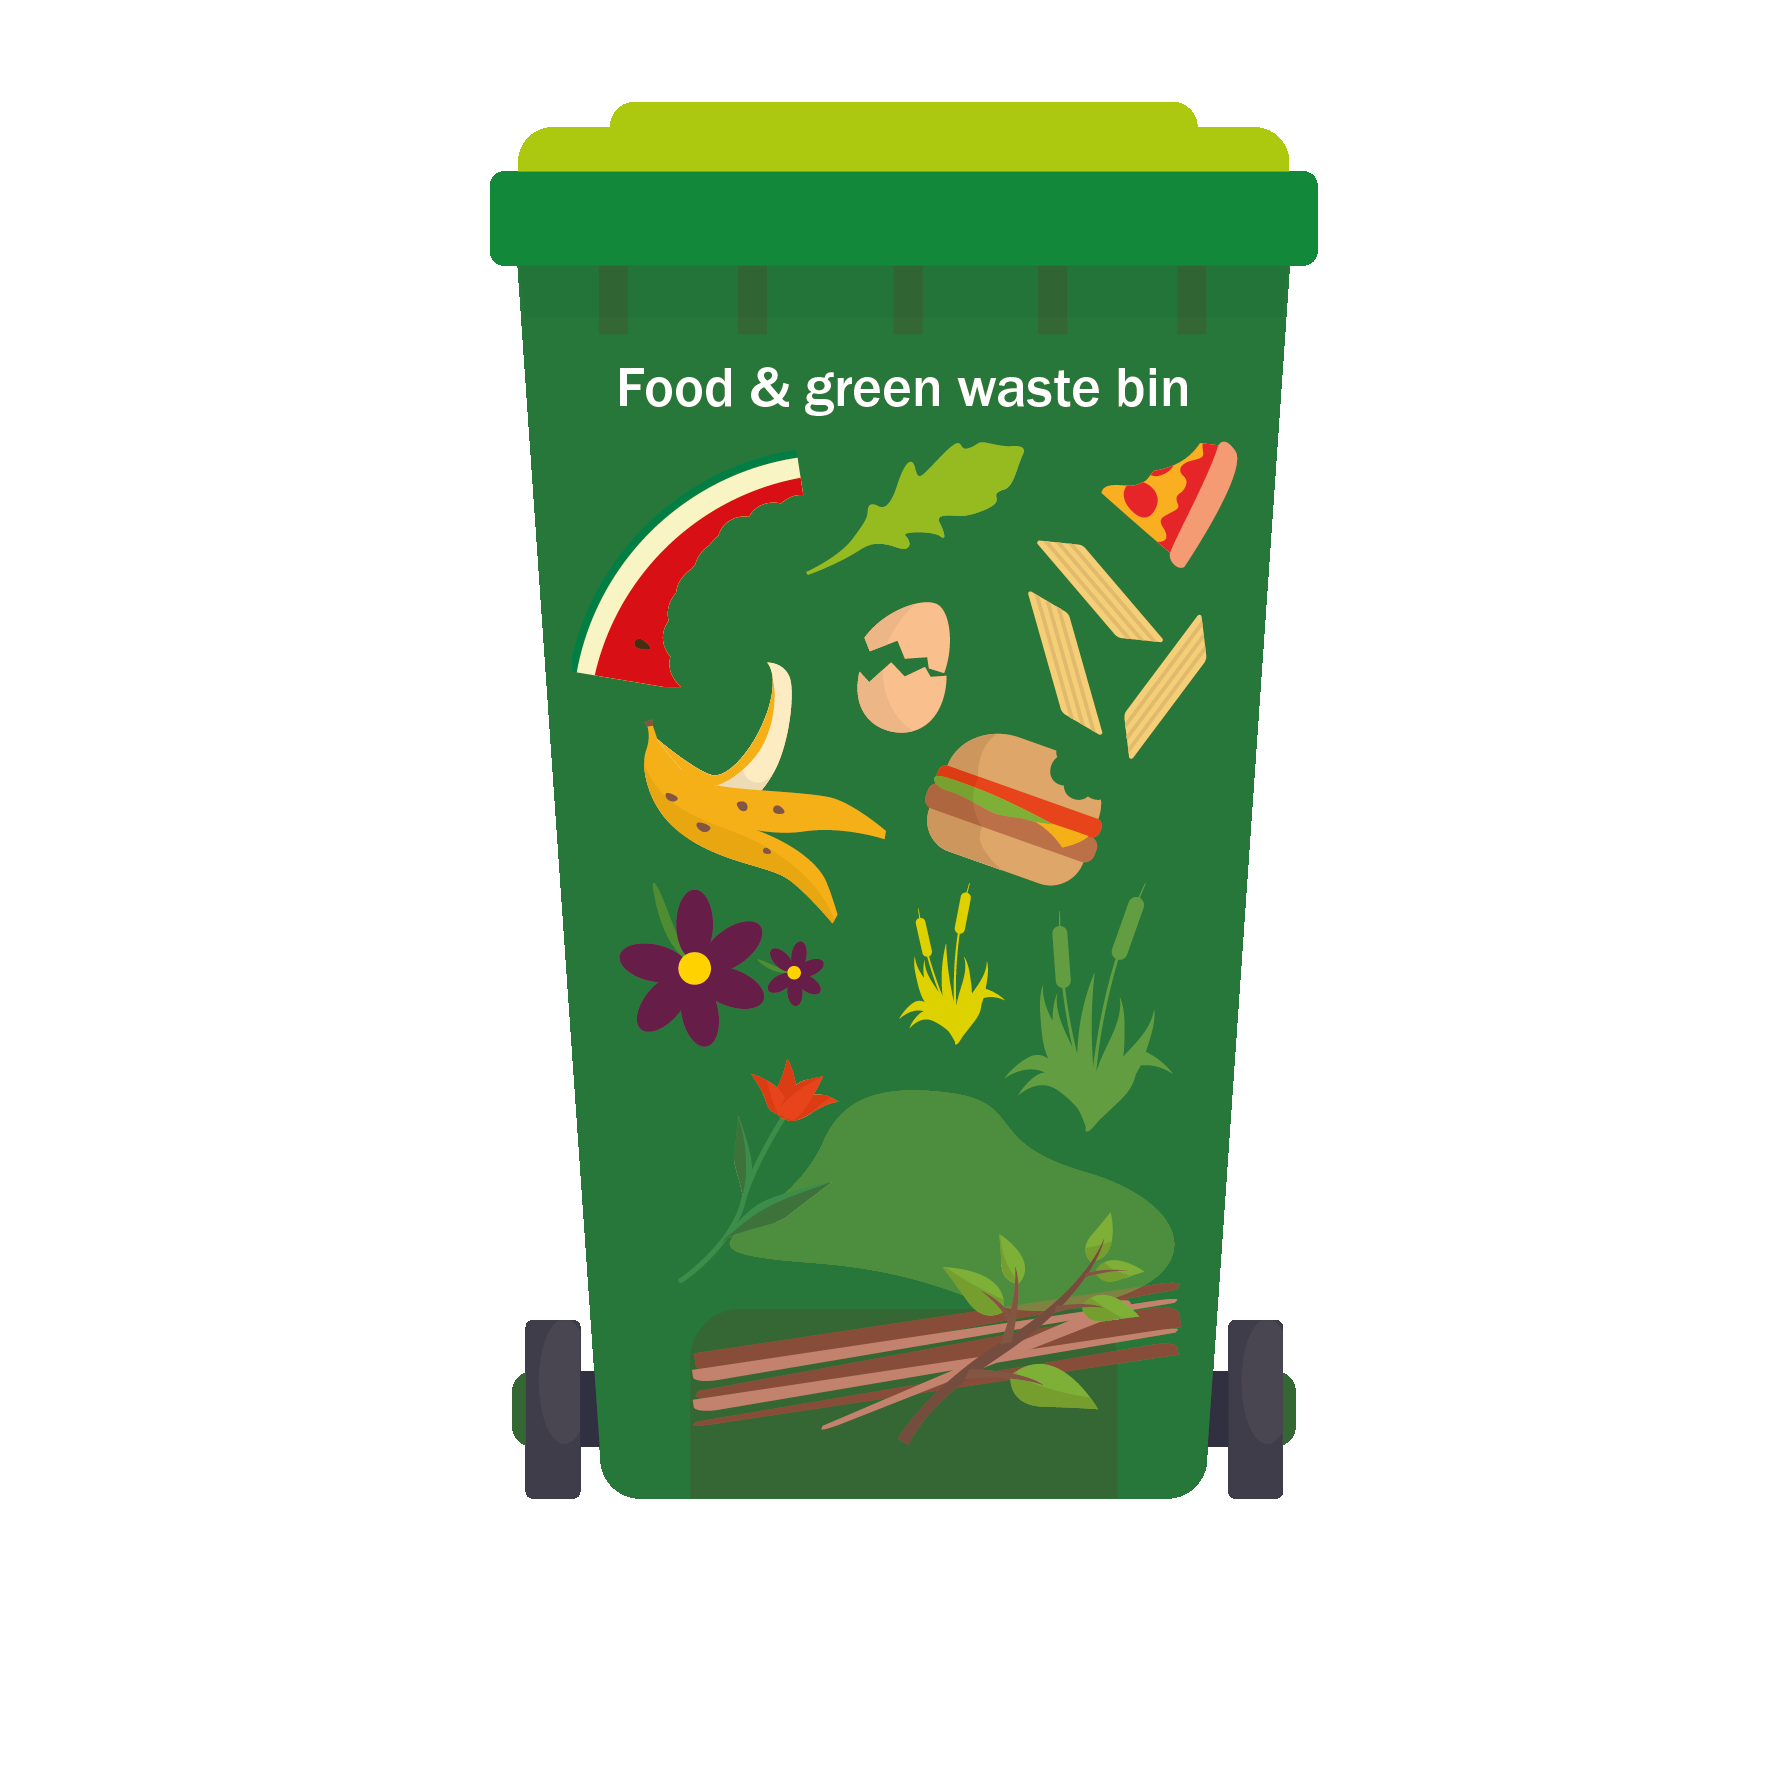 See web content for list of items accepted in green waste